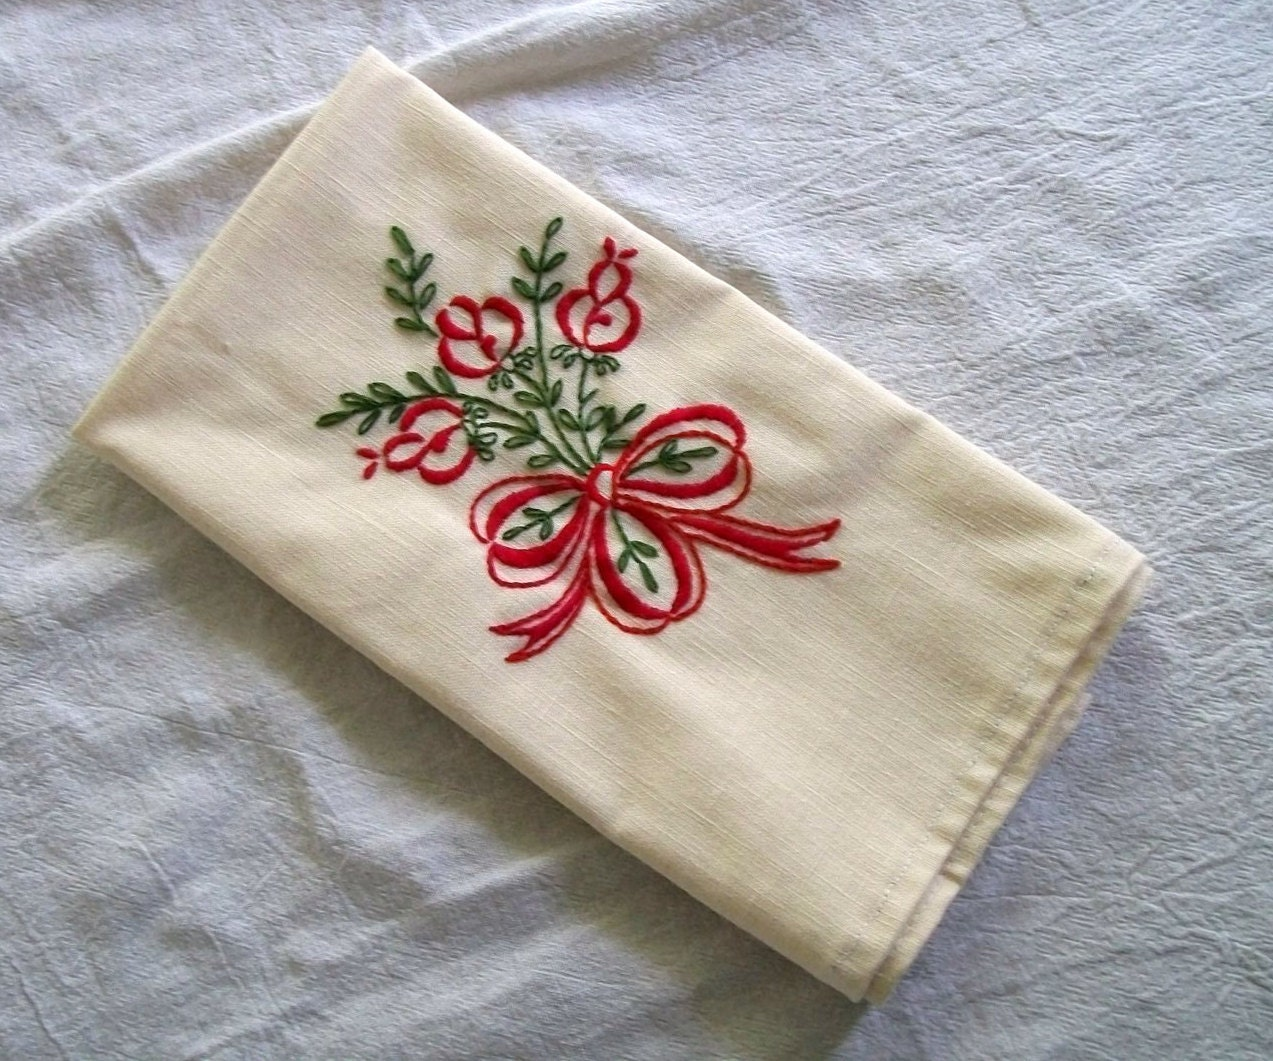 Rose Embroidered Towels: Tea Towel With Hand Embroidery Embroidery Red Rose Towels